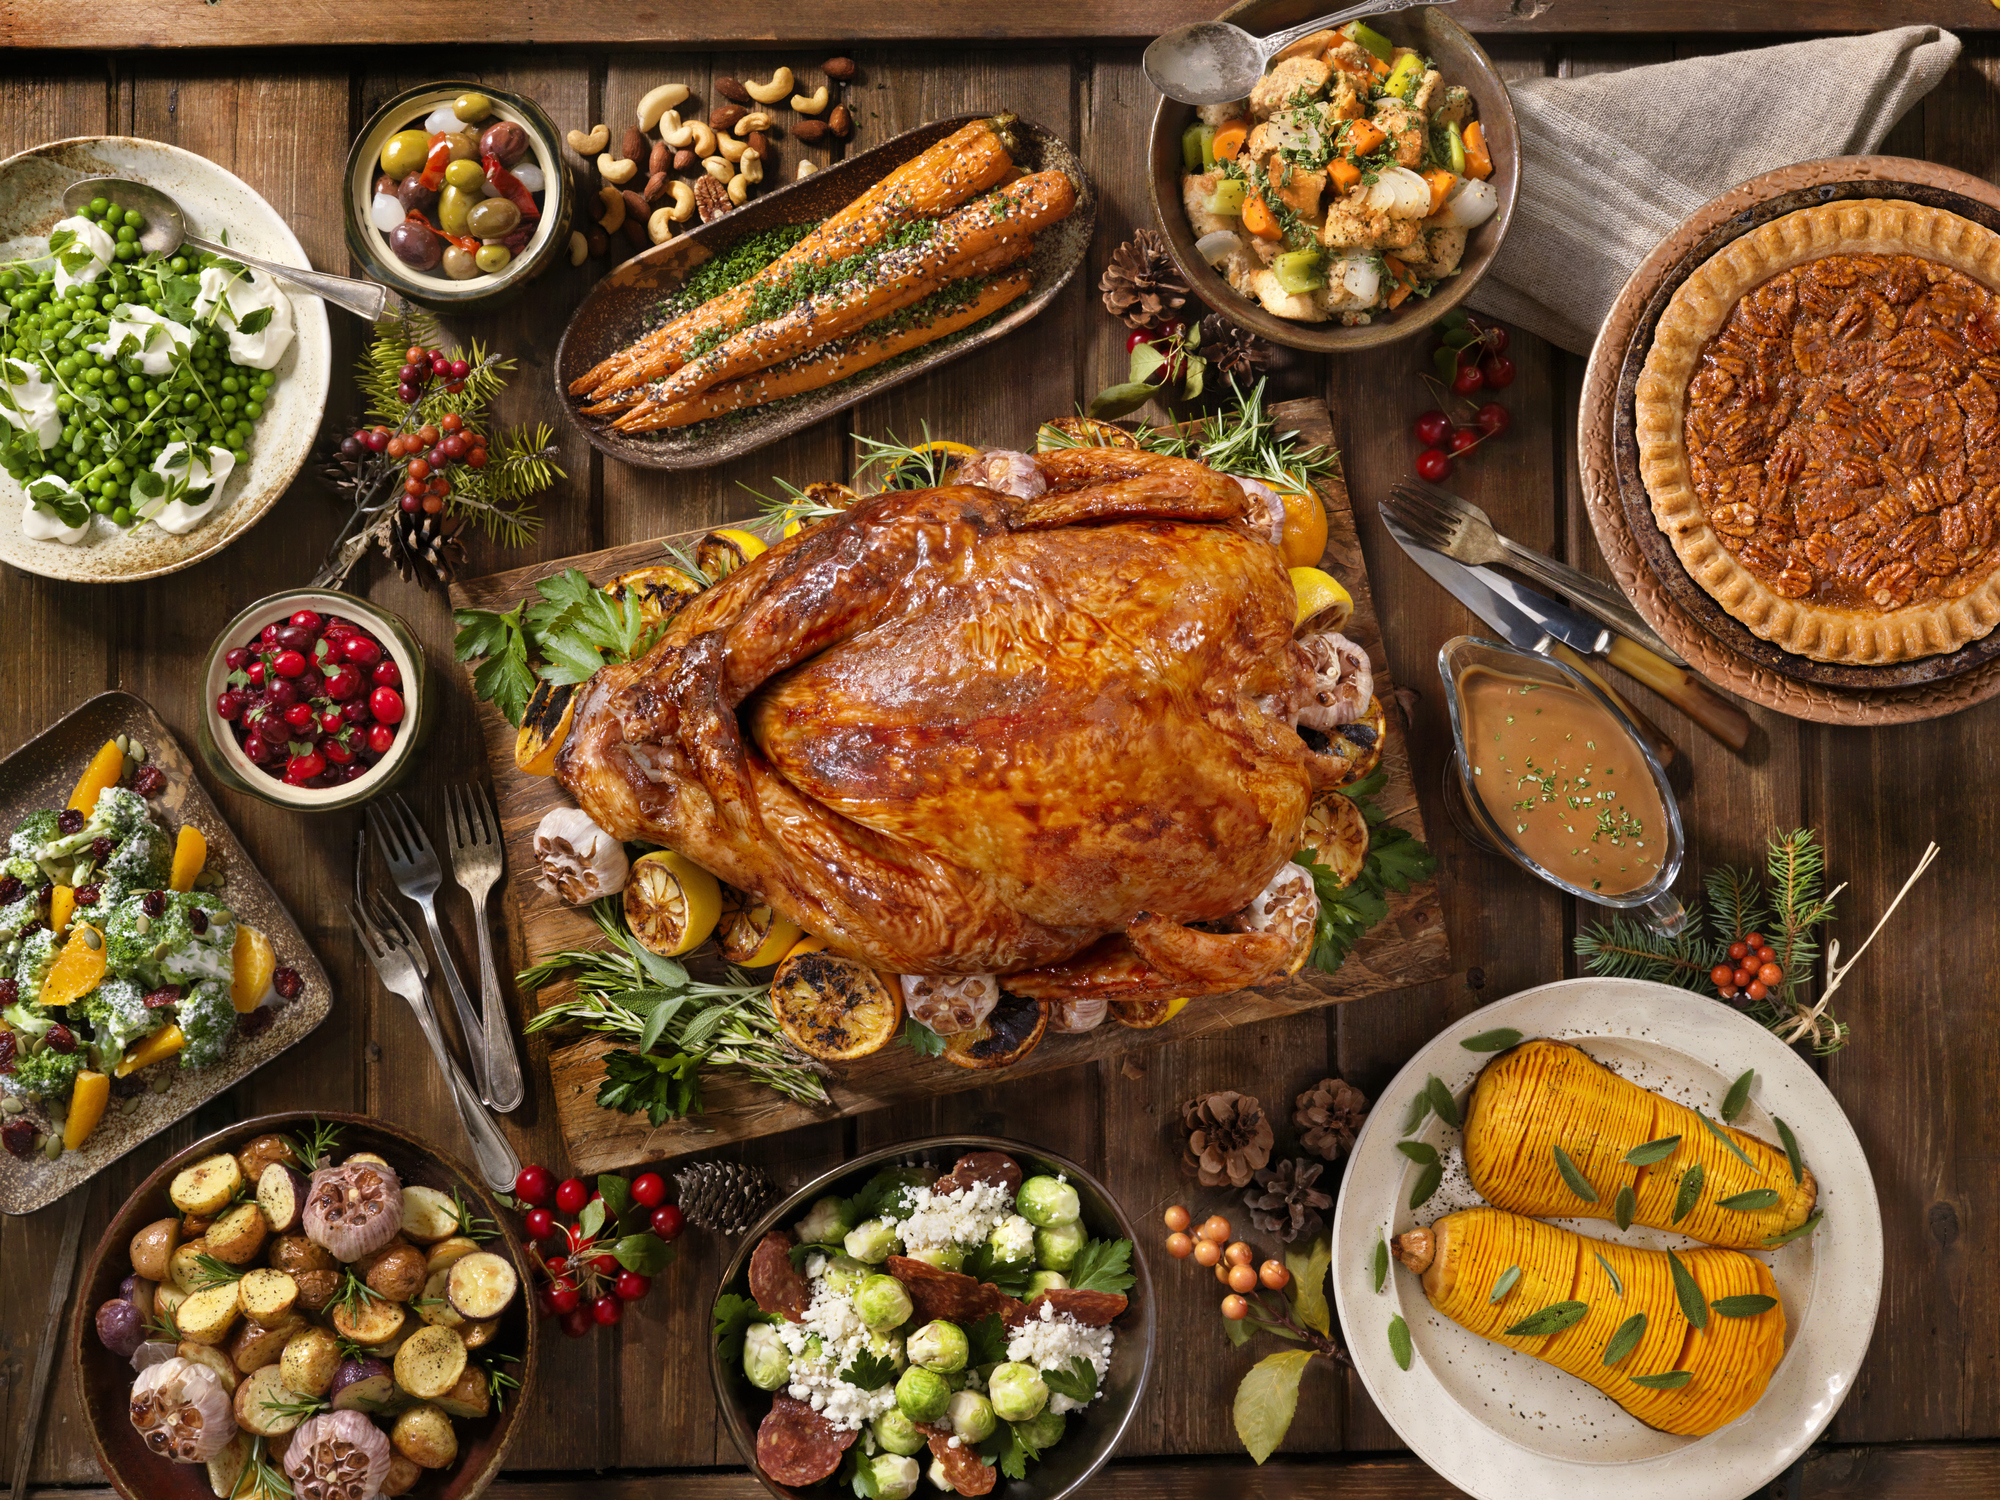 10 Ways to cook a little healthier this thanksgiving (without sacrificing tradition or flavor)